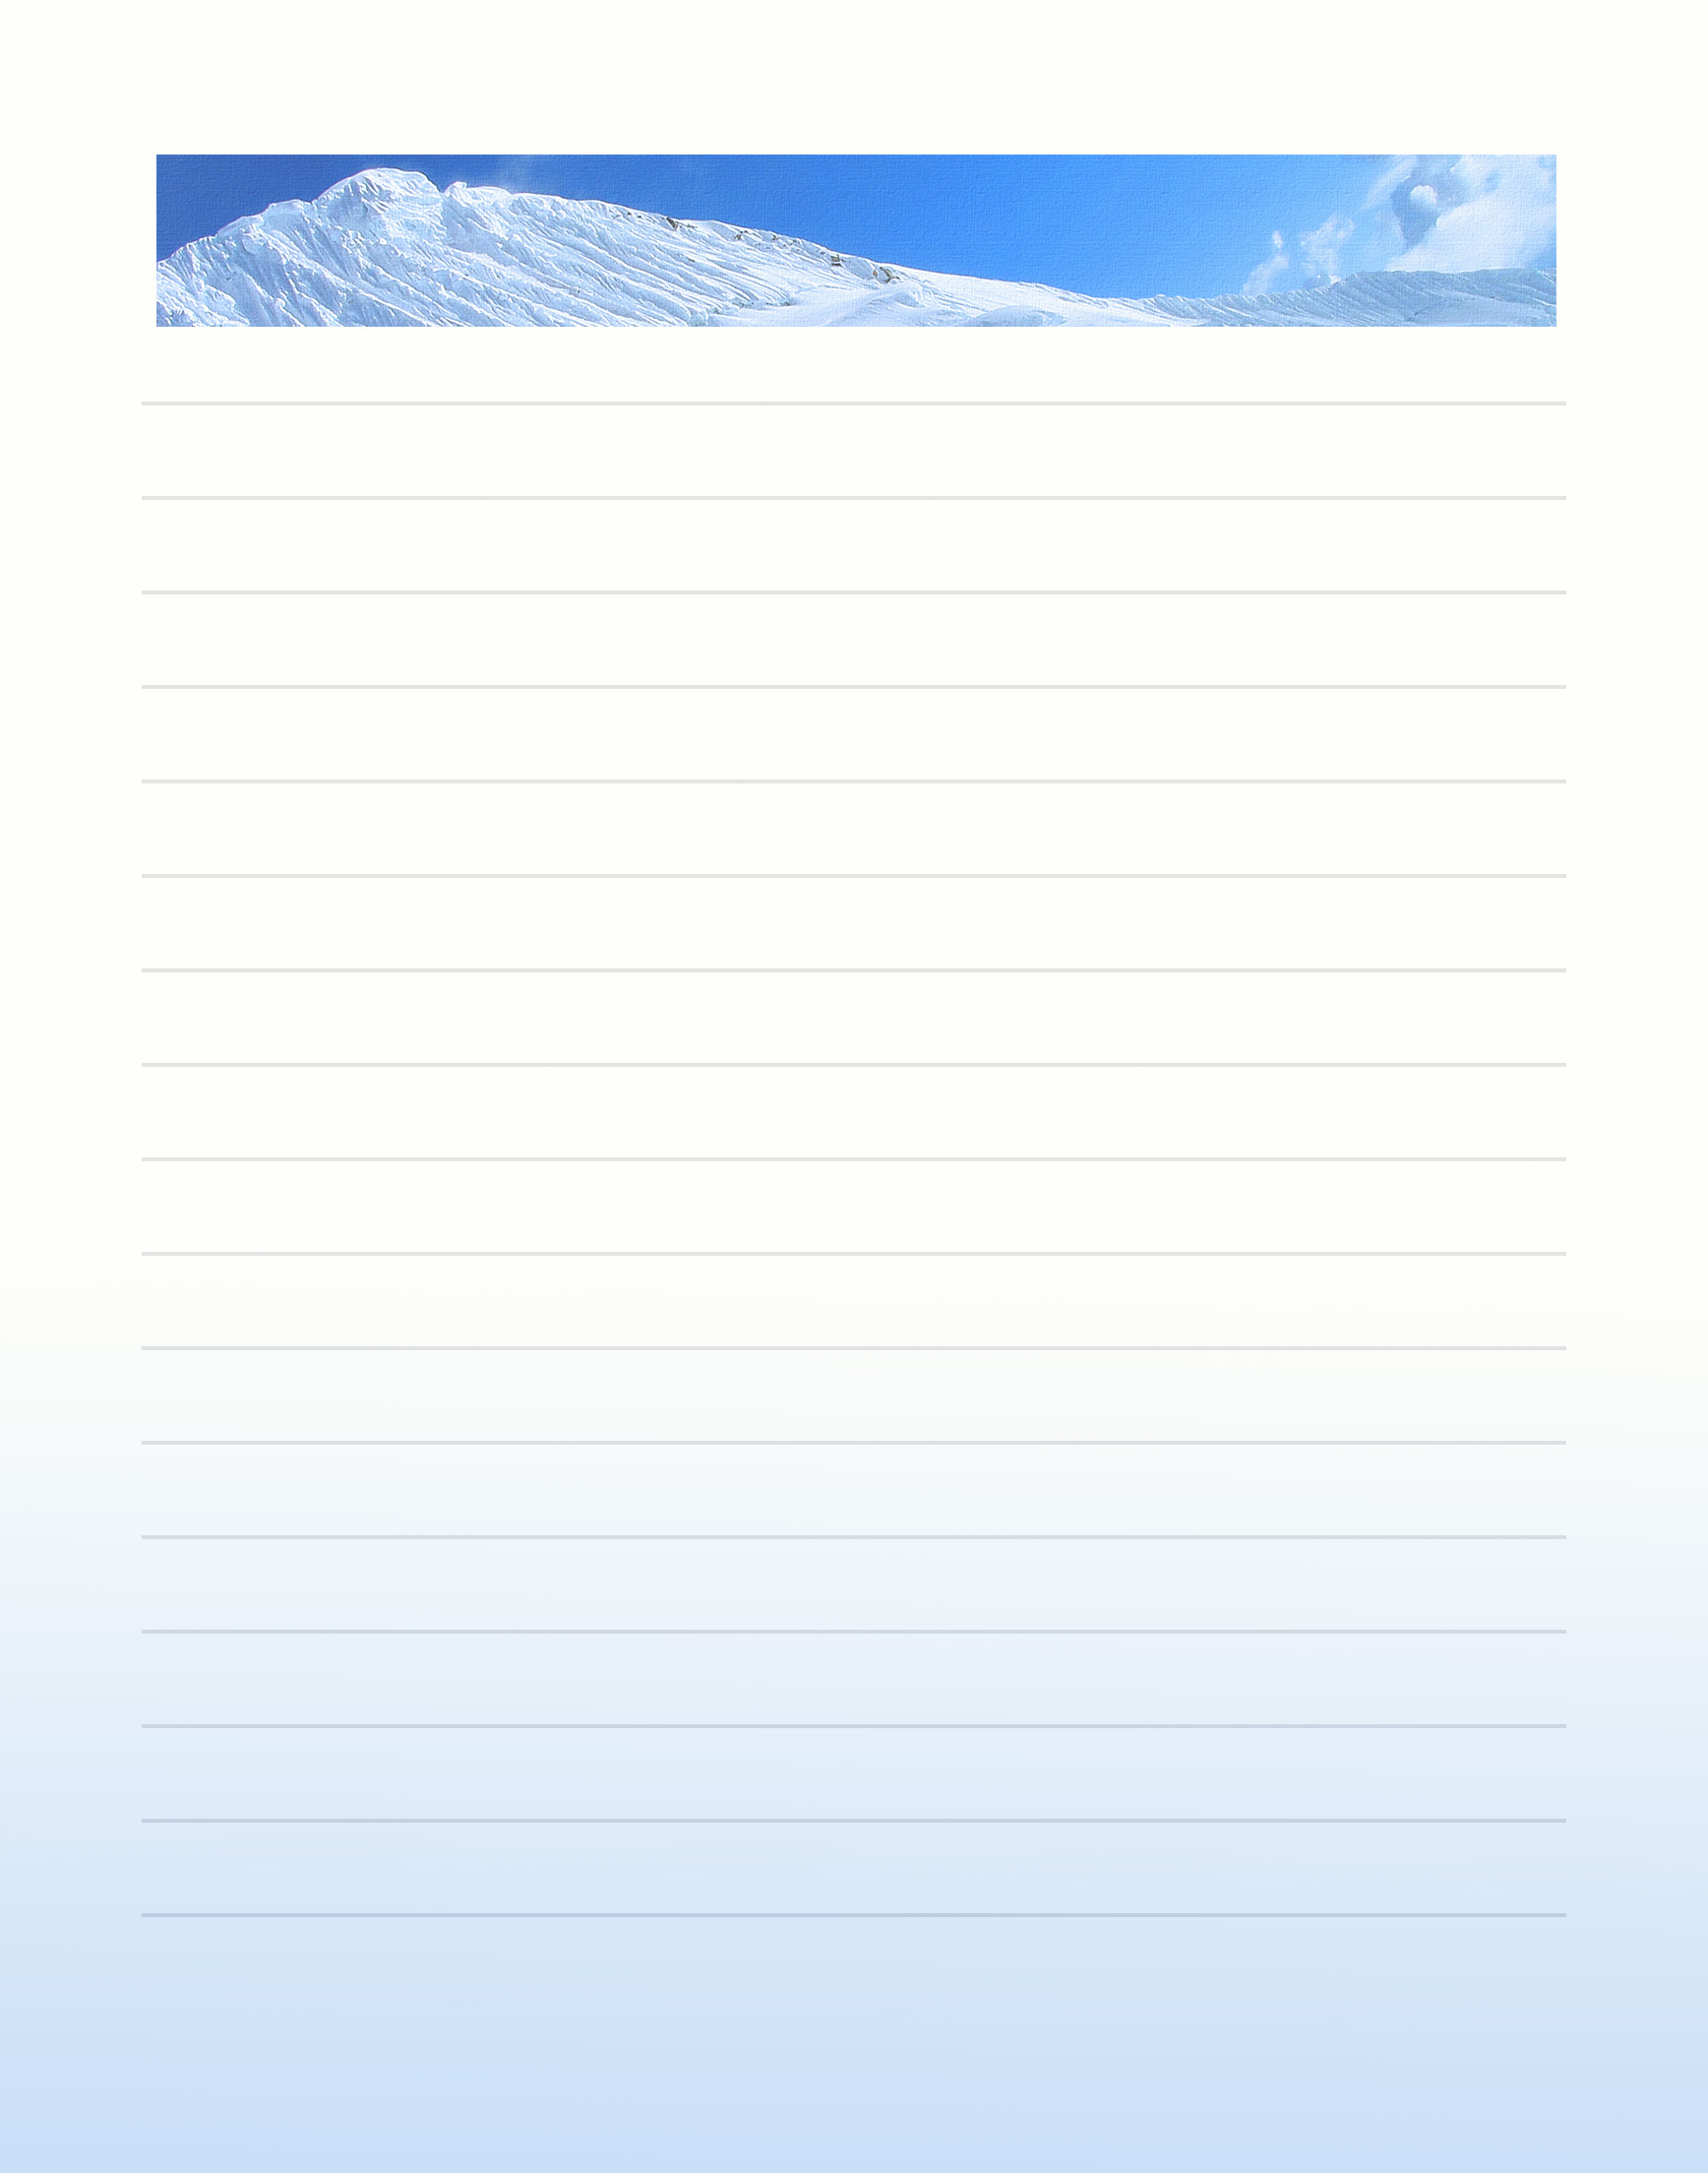 012 Winter Free Printable Stationery Template ~ Ulyssesroom - Free Printable Winter Stationery